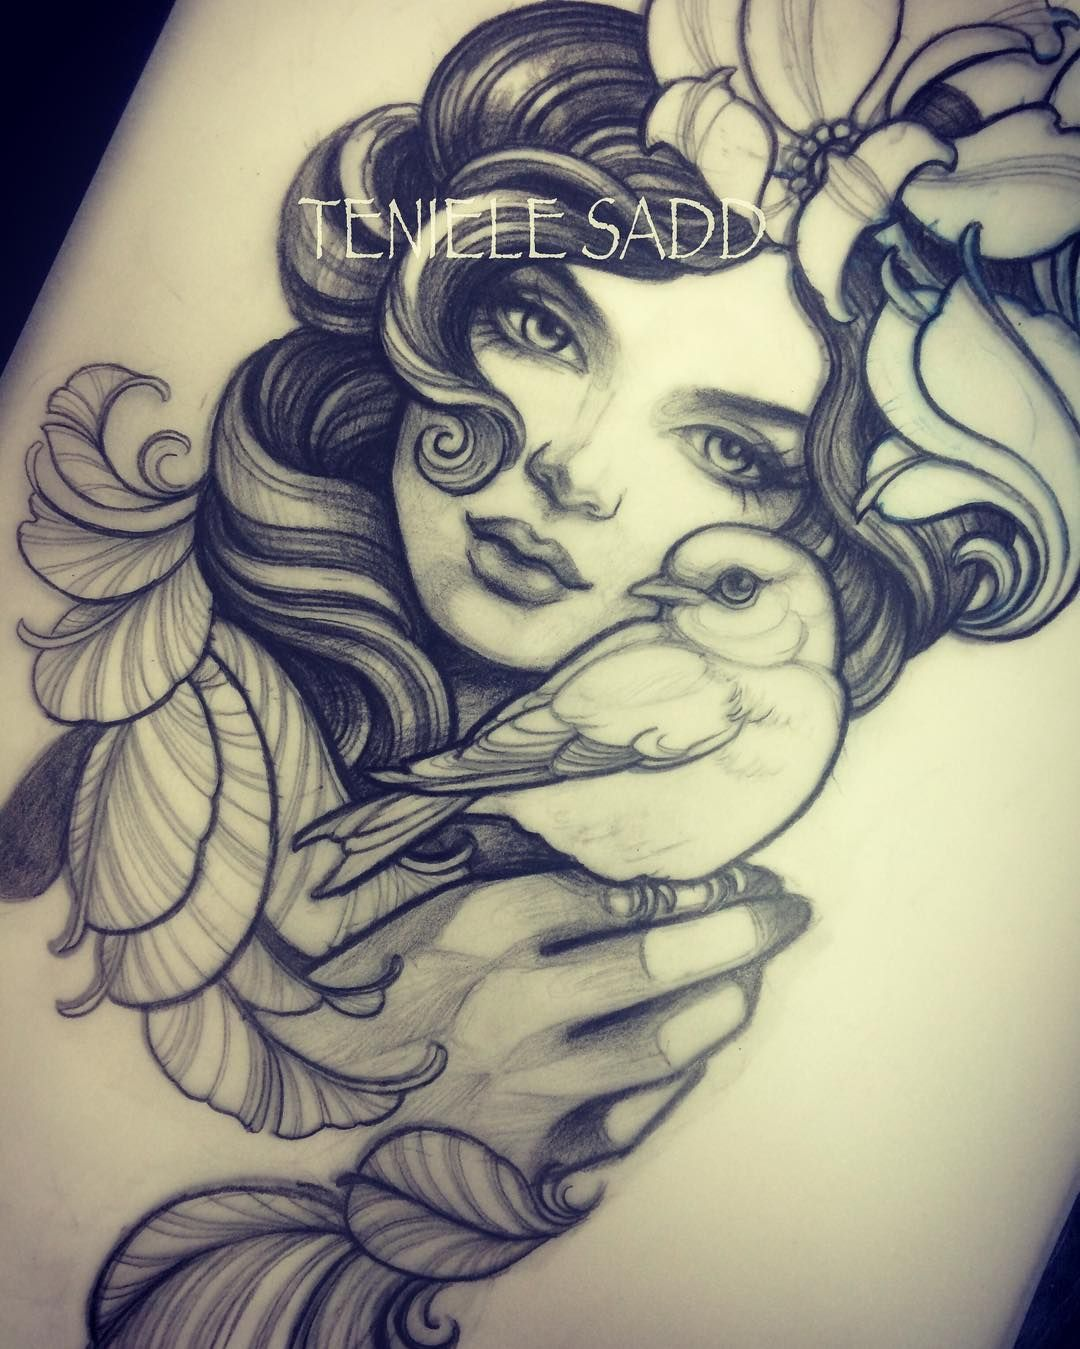 Mother Nature Tattoos: Teniele Sadd (@teniele) On